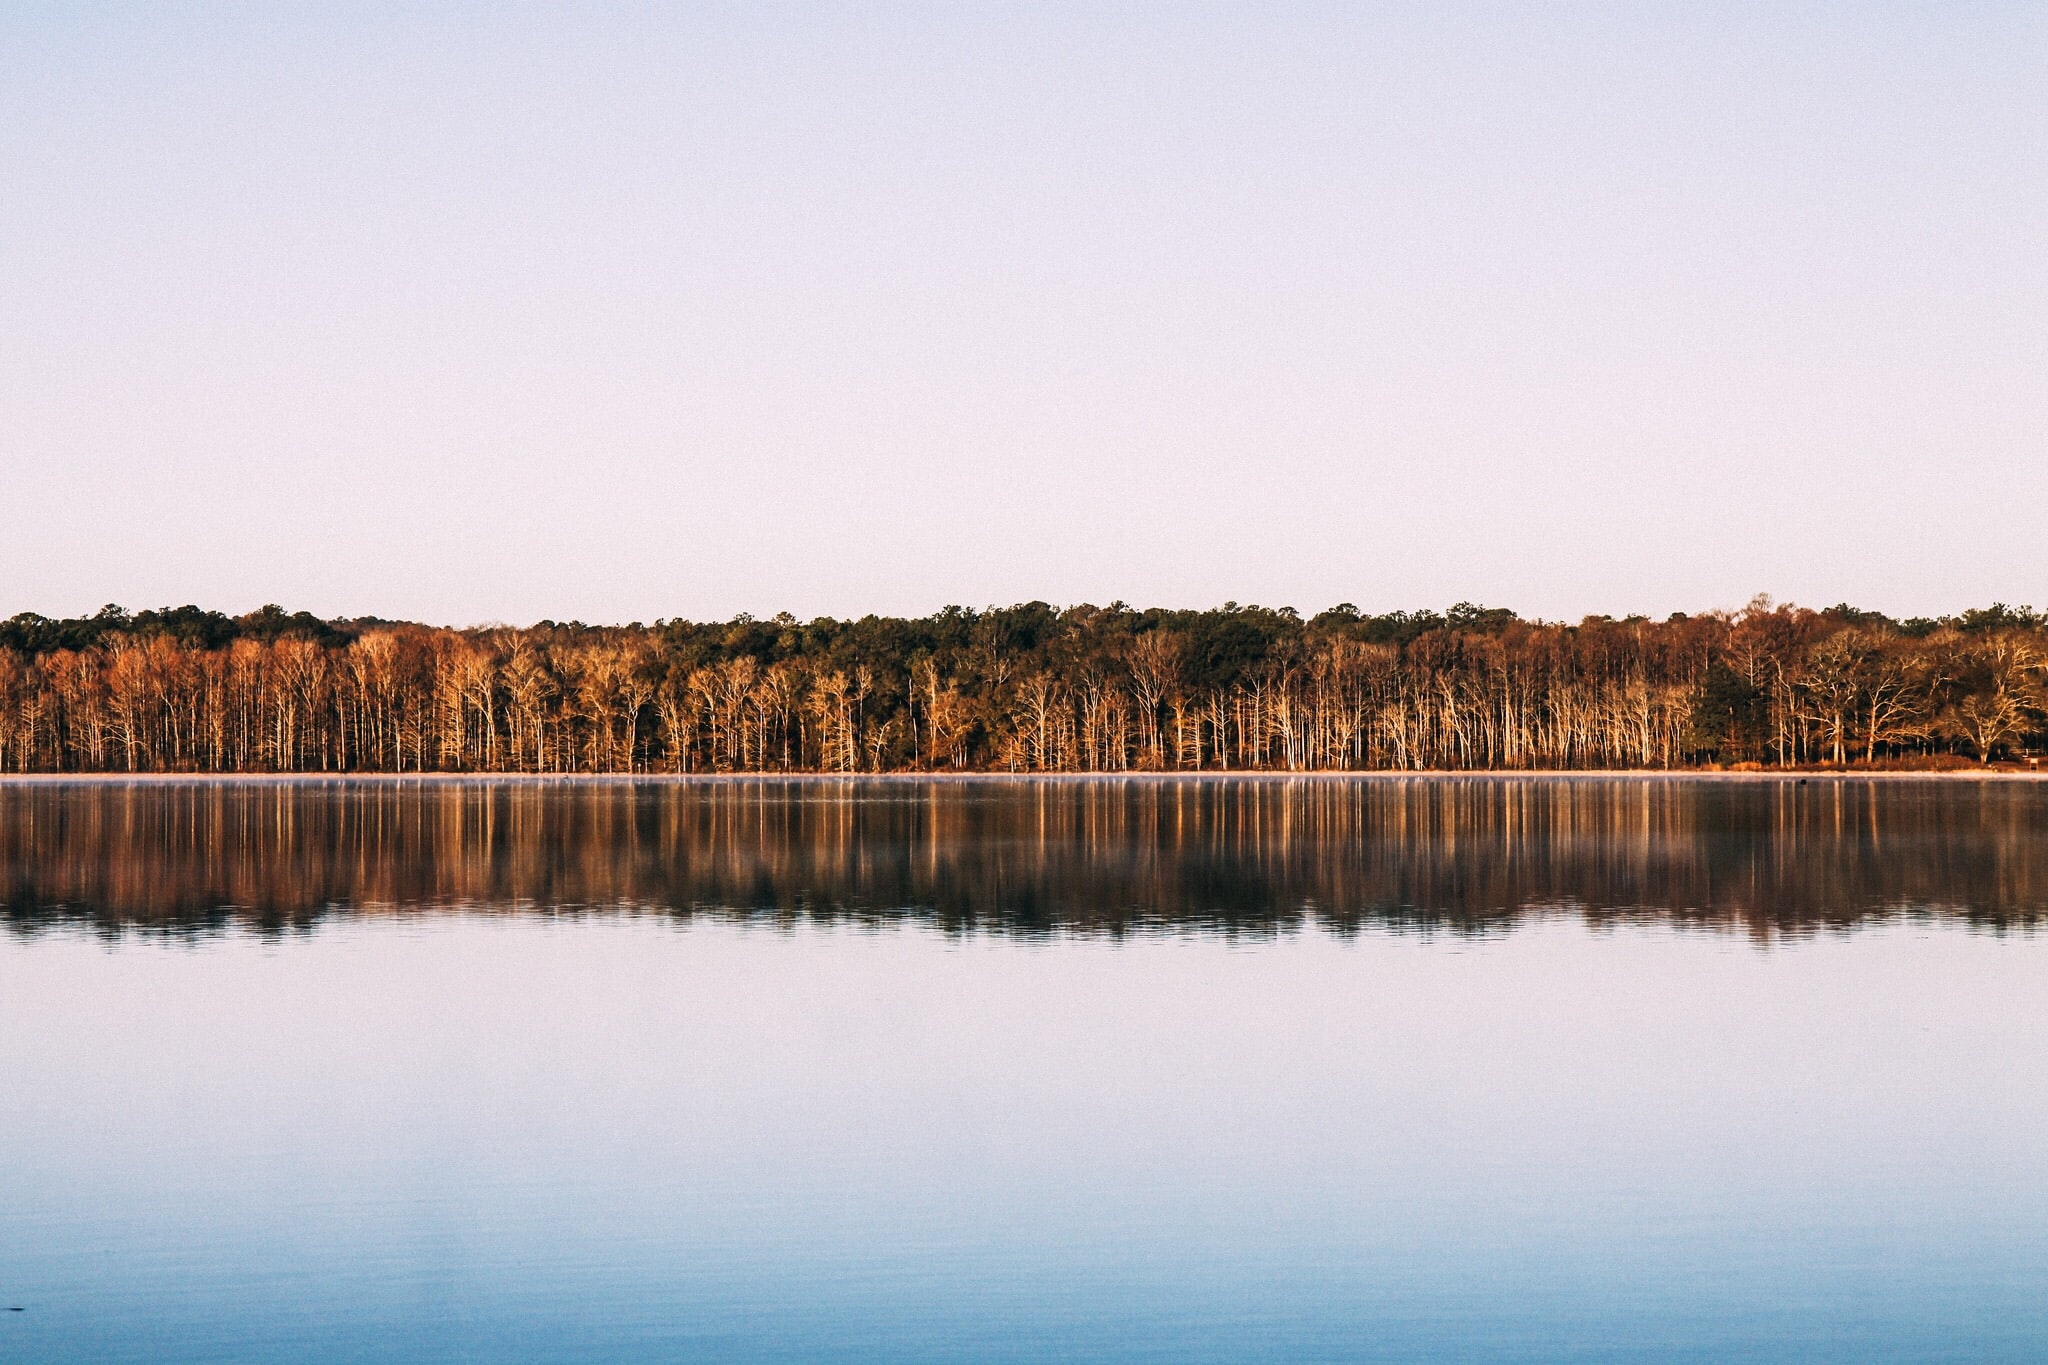 View across a lake on autumn trees on the other shore